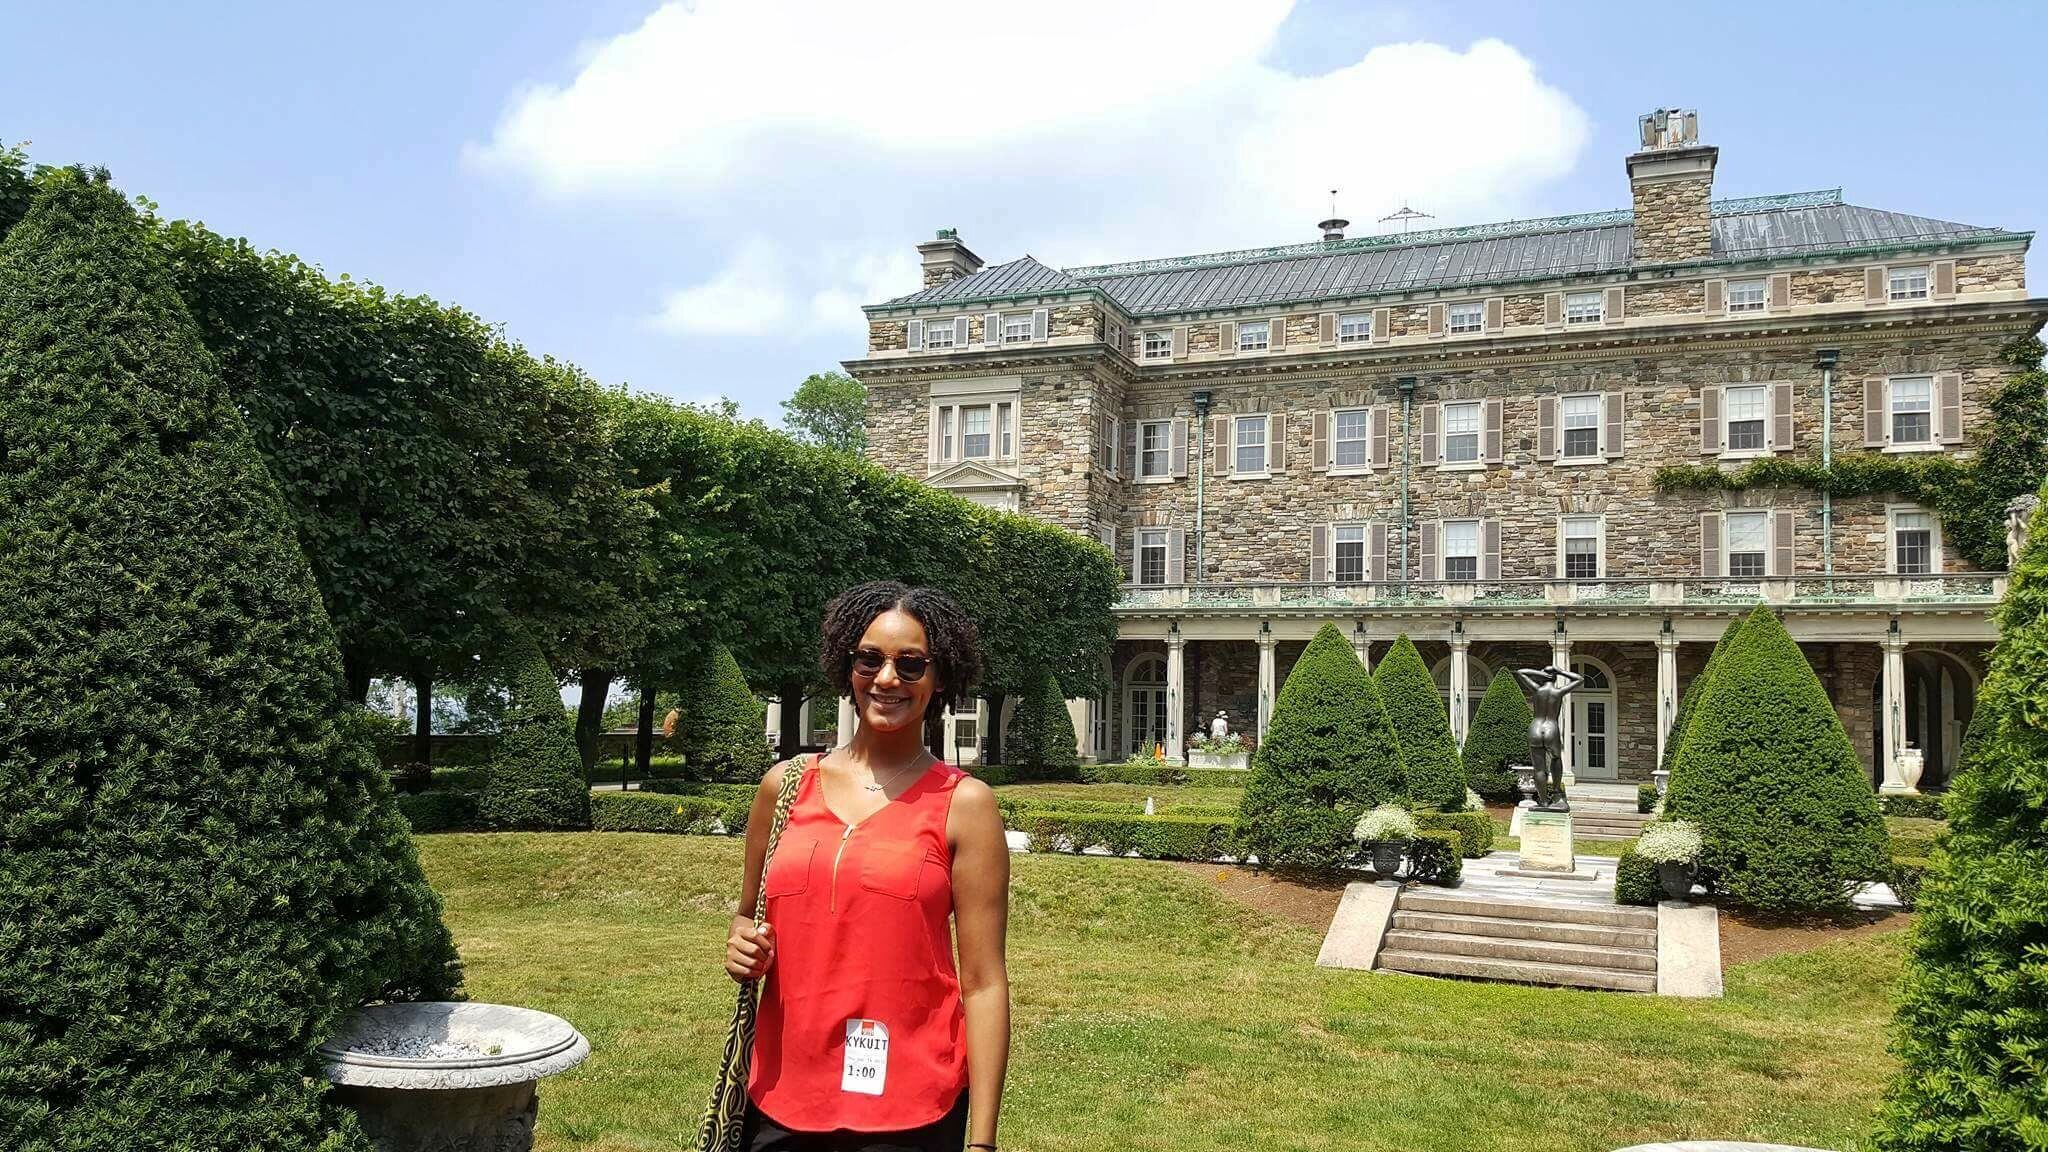 Rockefeller Estate - Kykuit Tours - Kykuit Mansion and Rockefeller Garden: Day trip from NYC to Sleepy Hollow, NY